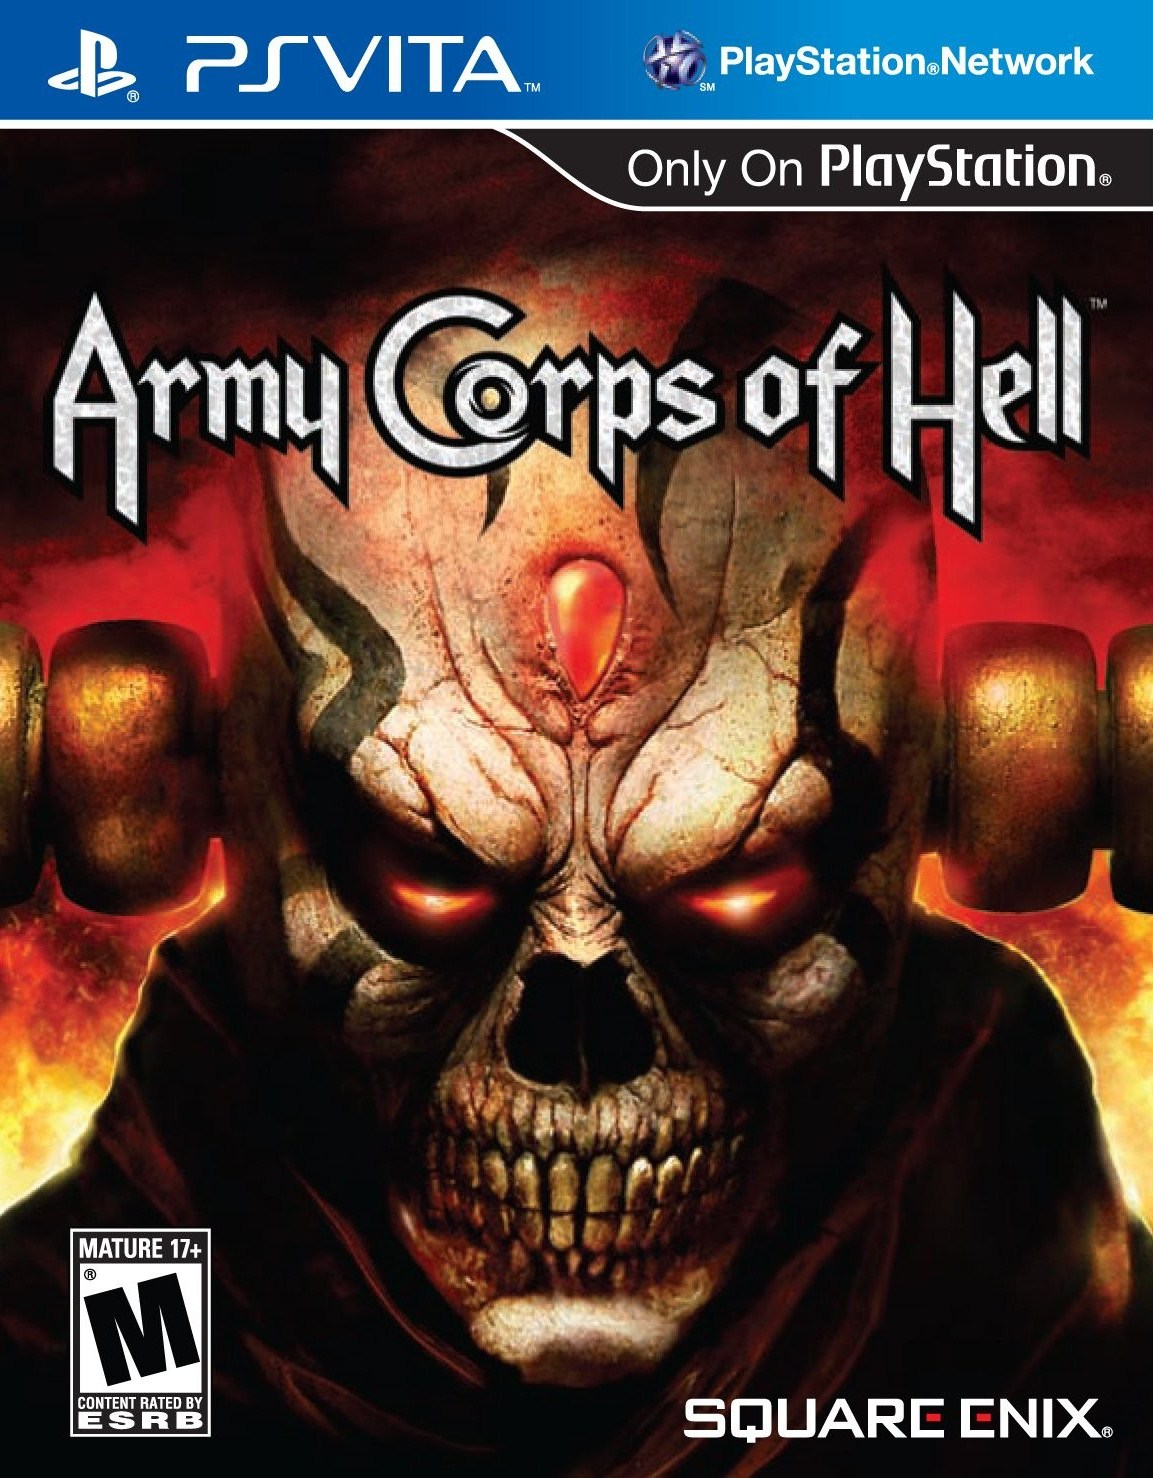 Army Corps Of Hell Review